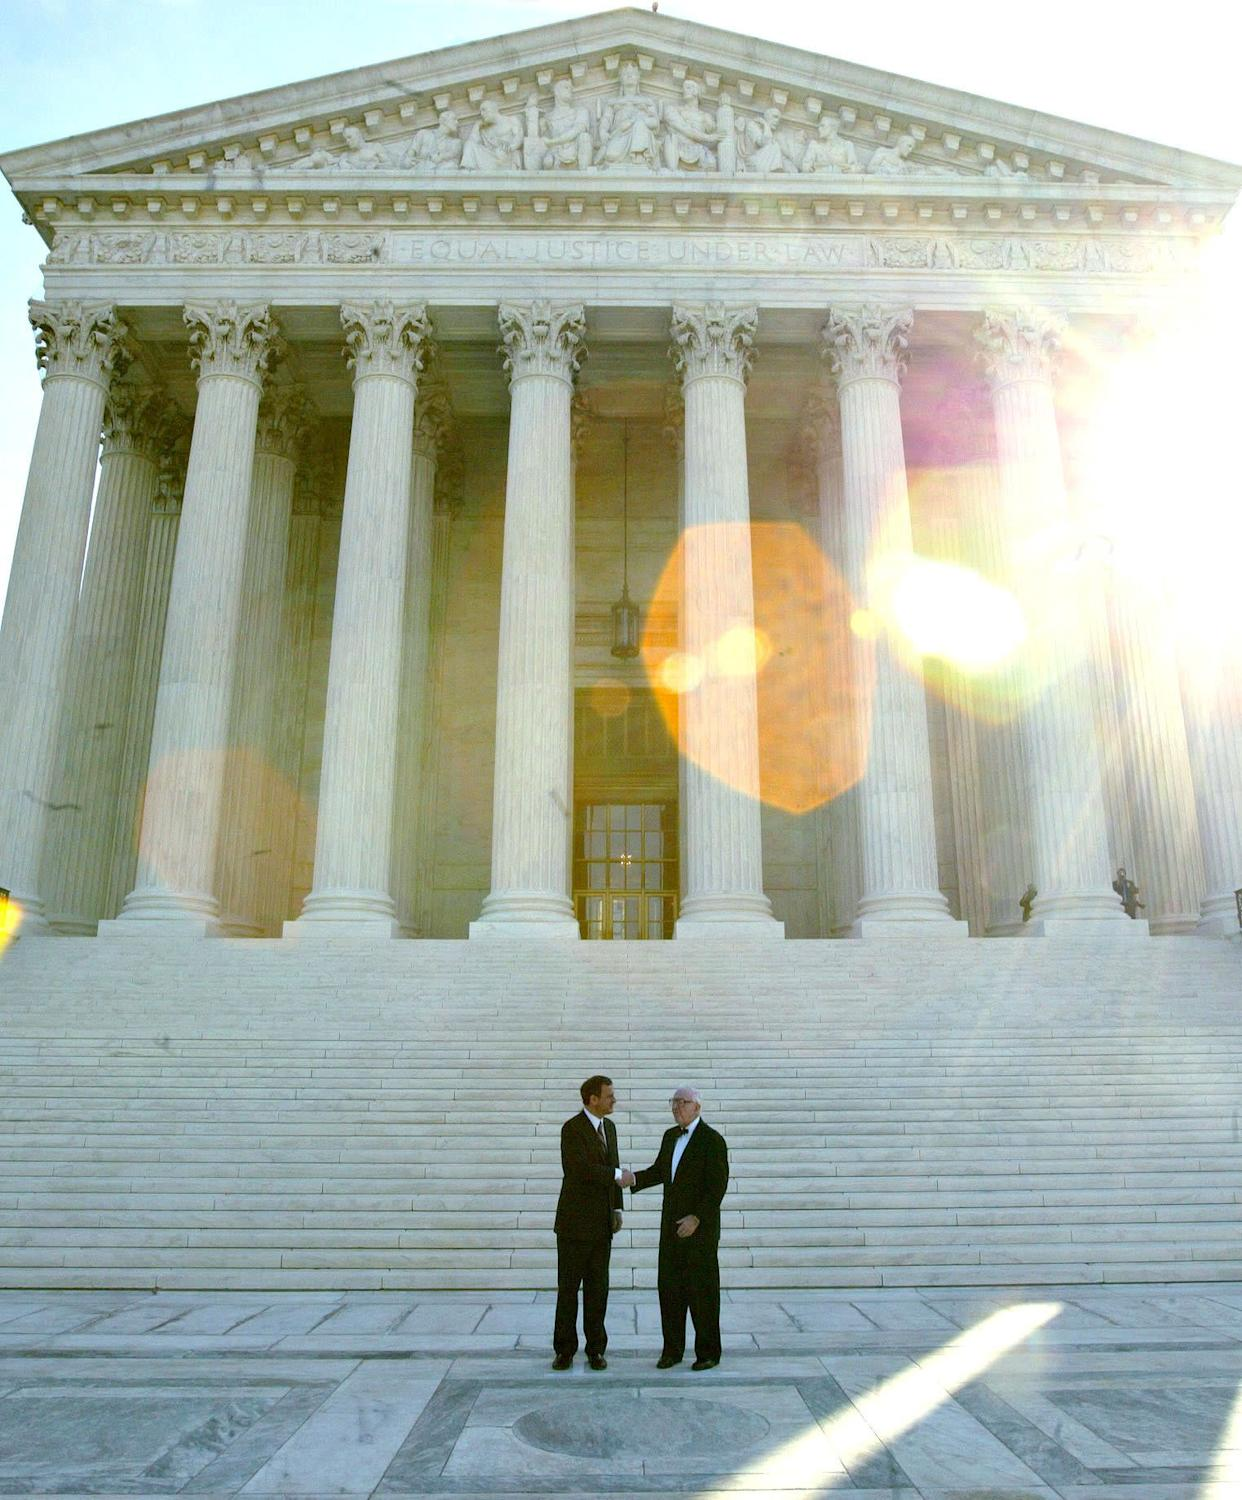 Chief Justice John Roberts (left) and Justice Stevens pose for photographers outside the U.S. Supreme Court after Roberts' investiture ceremony on Oct. 3, 2005.